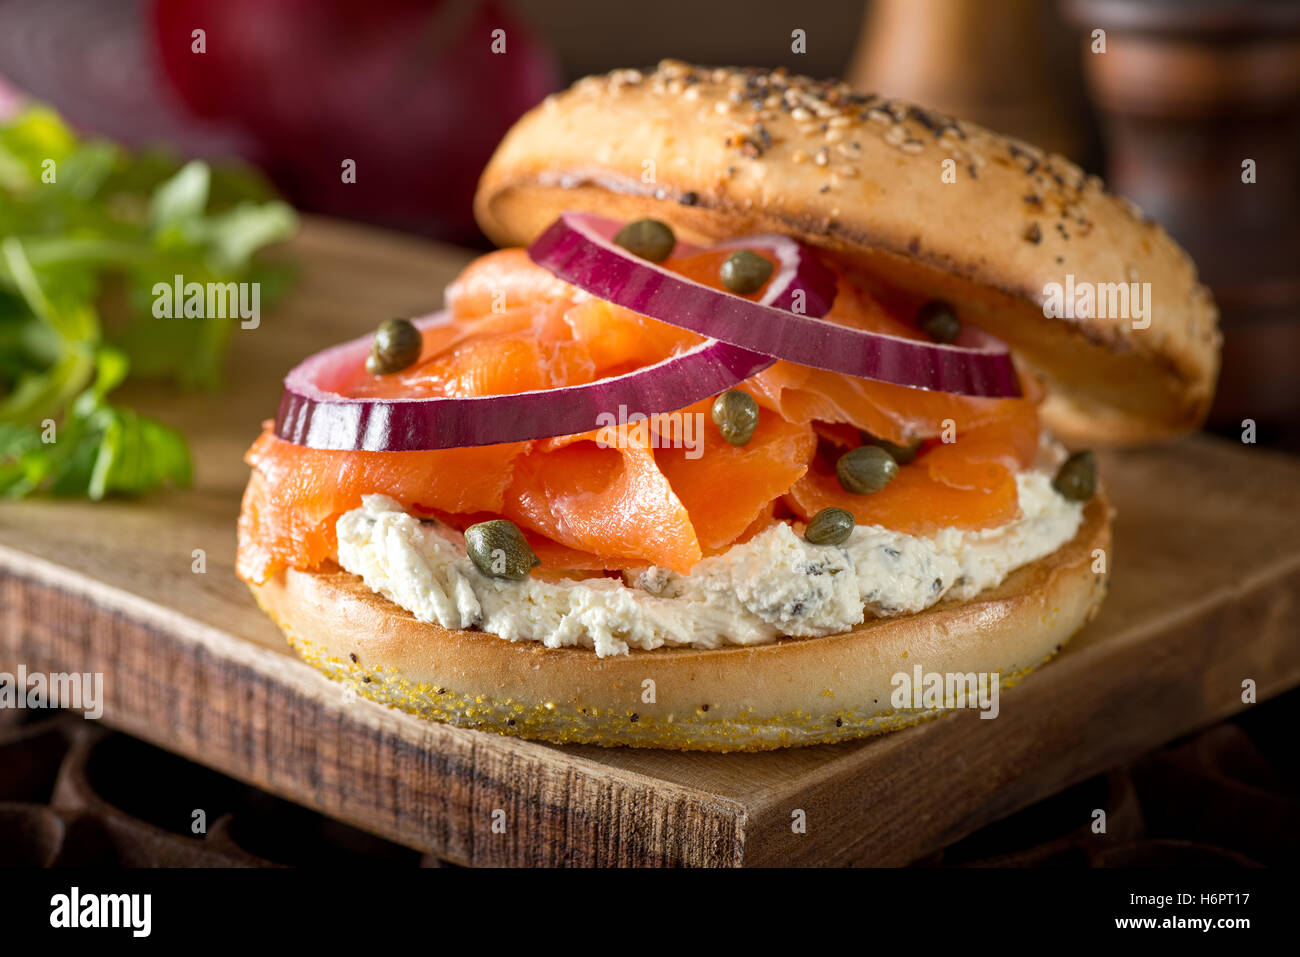 A delicious toasted bagel with smoked salmon, cream cheese, capers, and red onion. Stock Photo